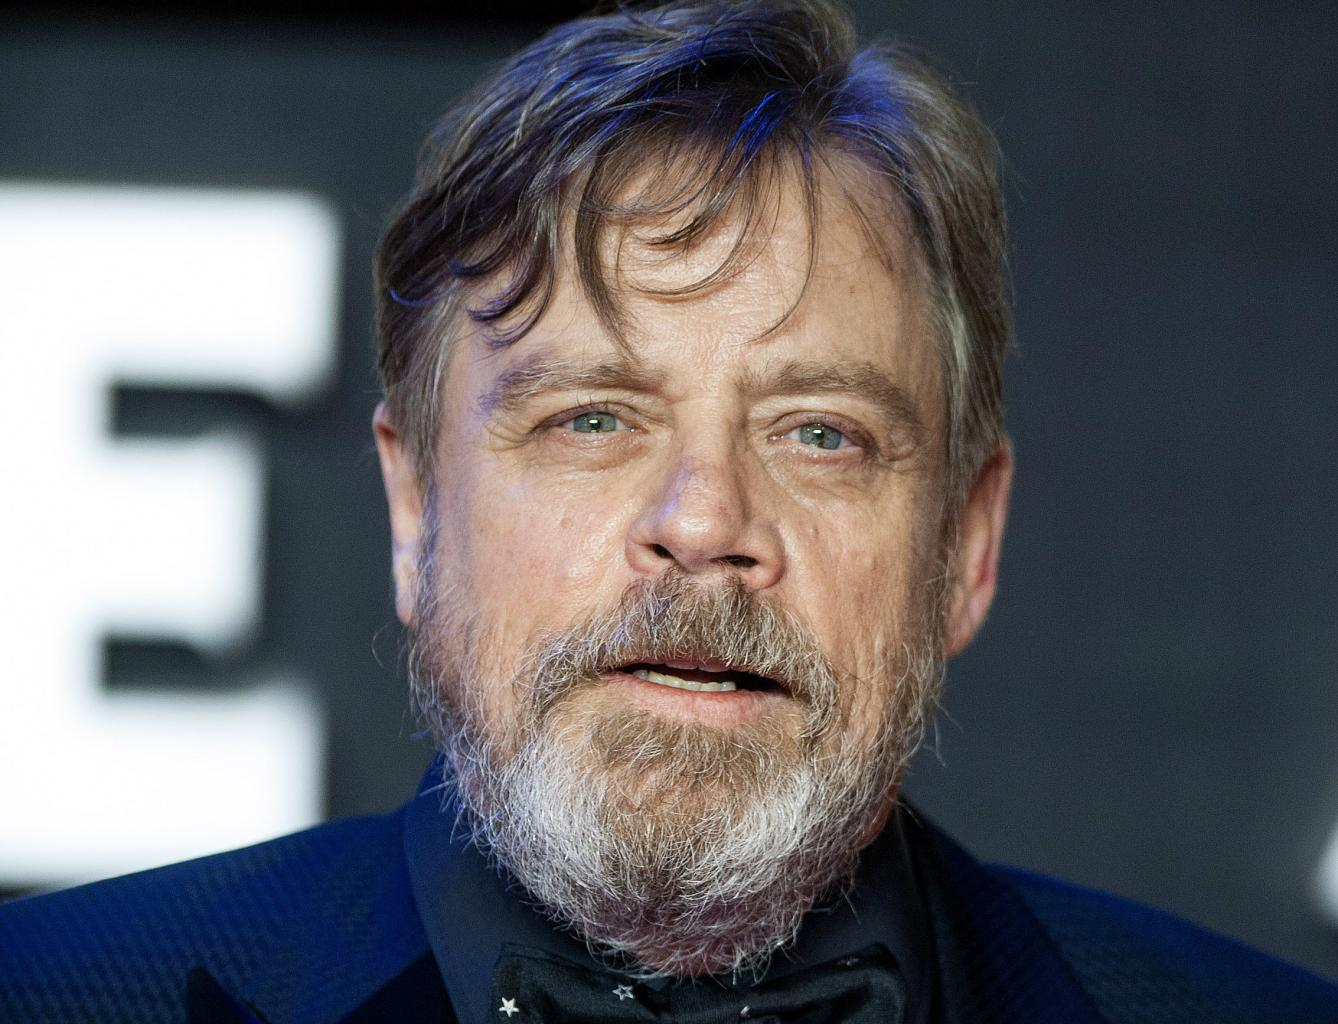 Mark Hamill Thinks        Stars Wars: The Last Jedi      '  Title Gives Off A        Real Samurai      '  Vibe